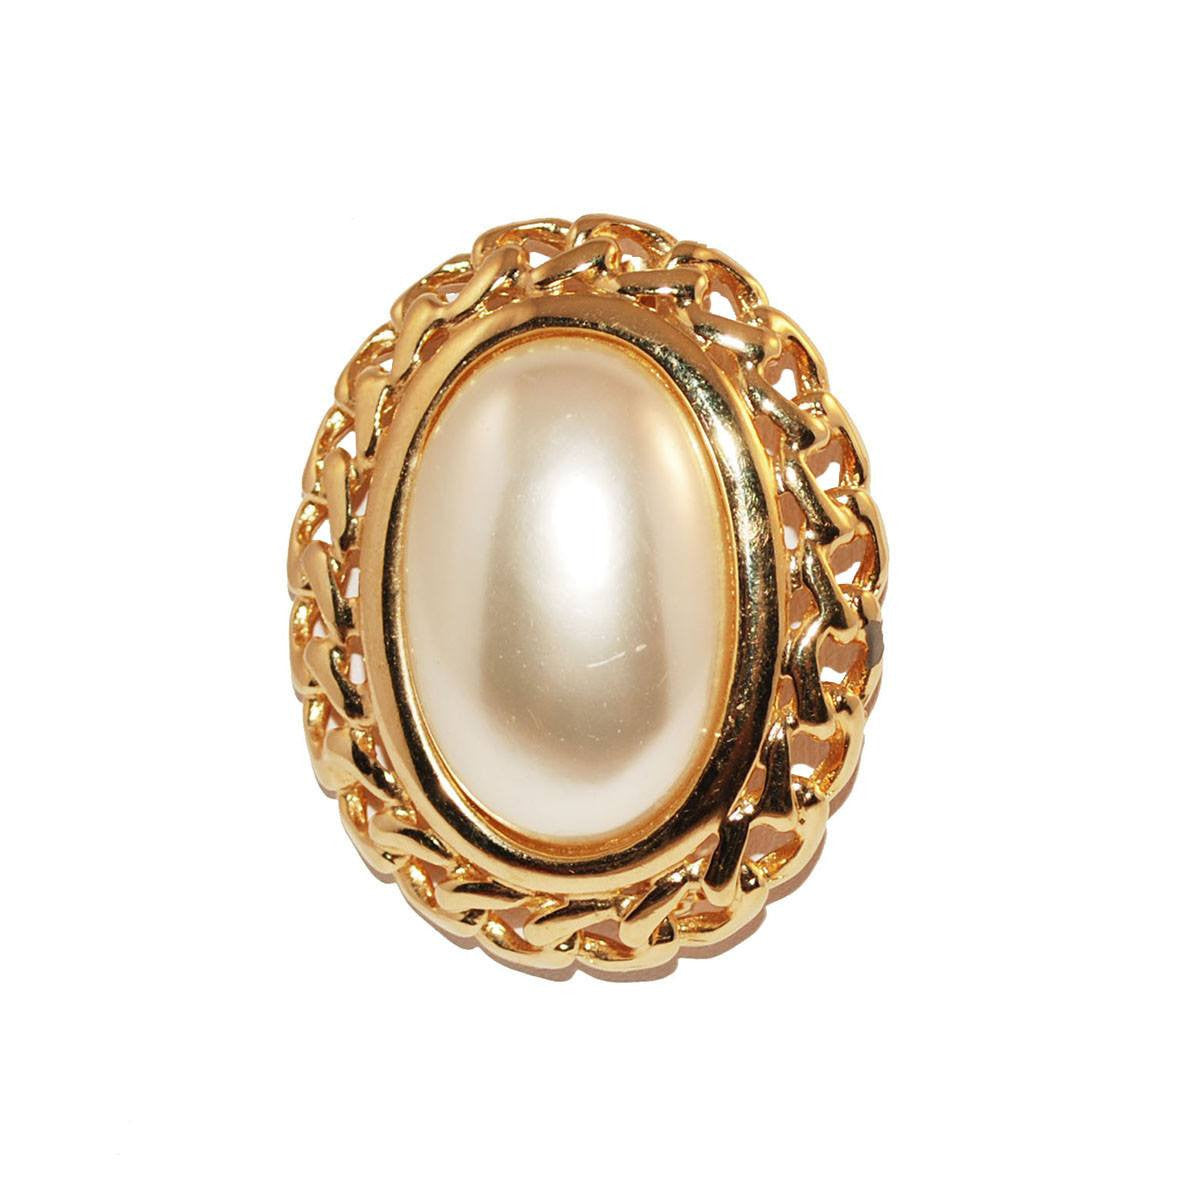 1970s Napier Mabe Pearl Brooch 3